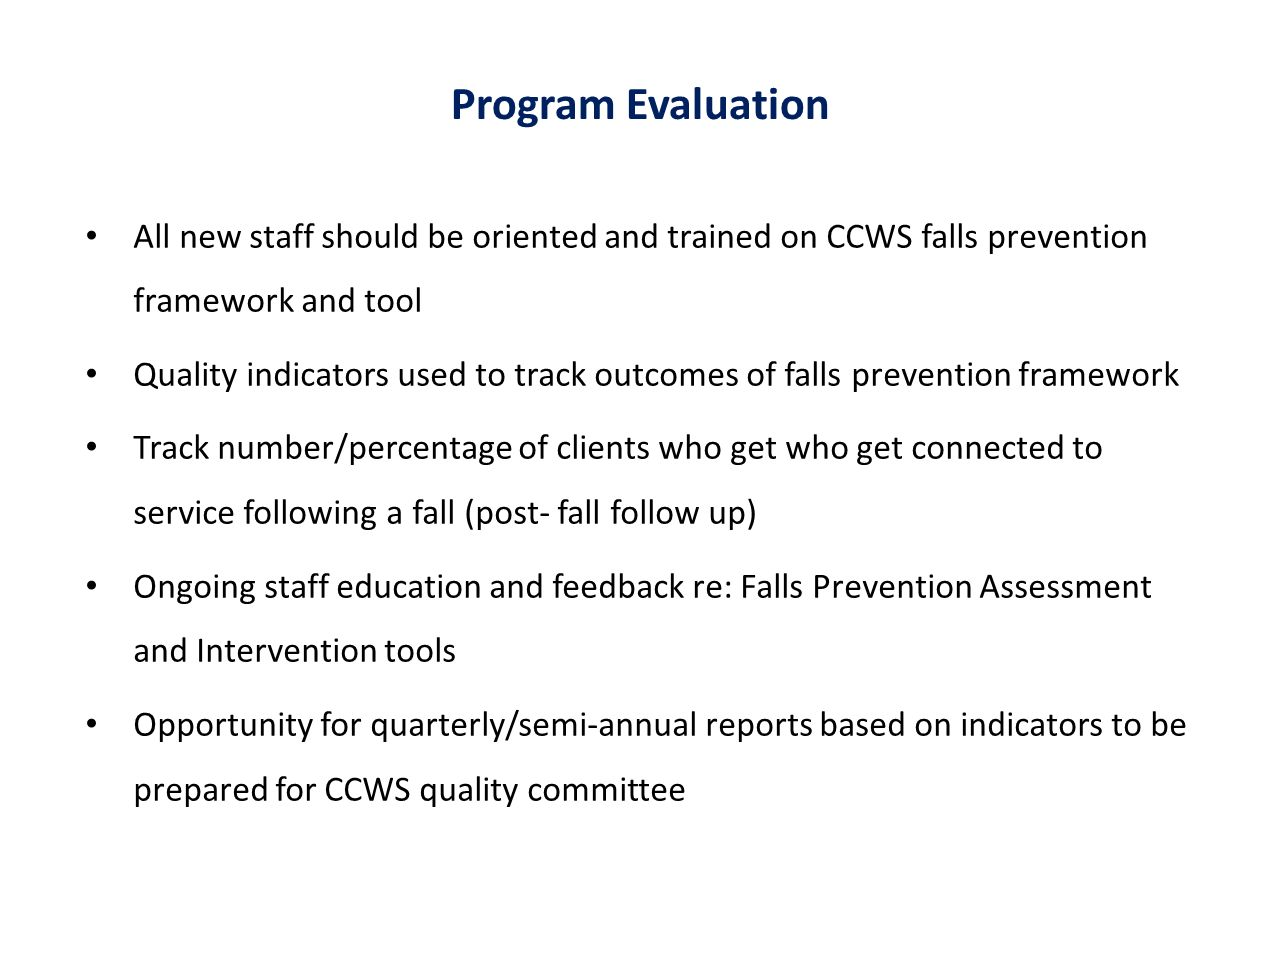 Program Evaluation All new staff should be oriented and trained on CCWS falls prevention framework and tool.